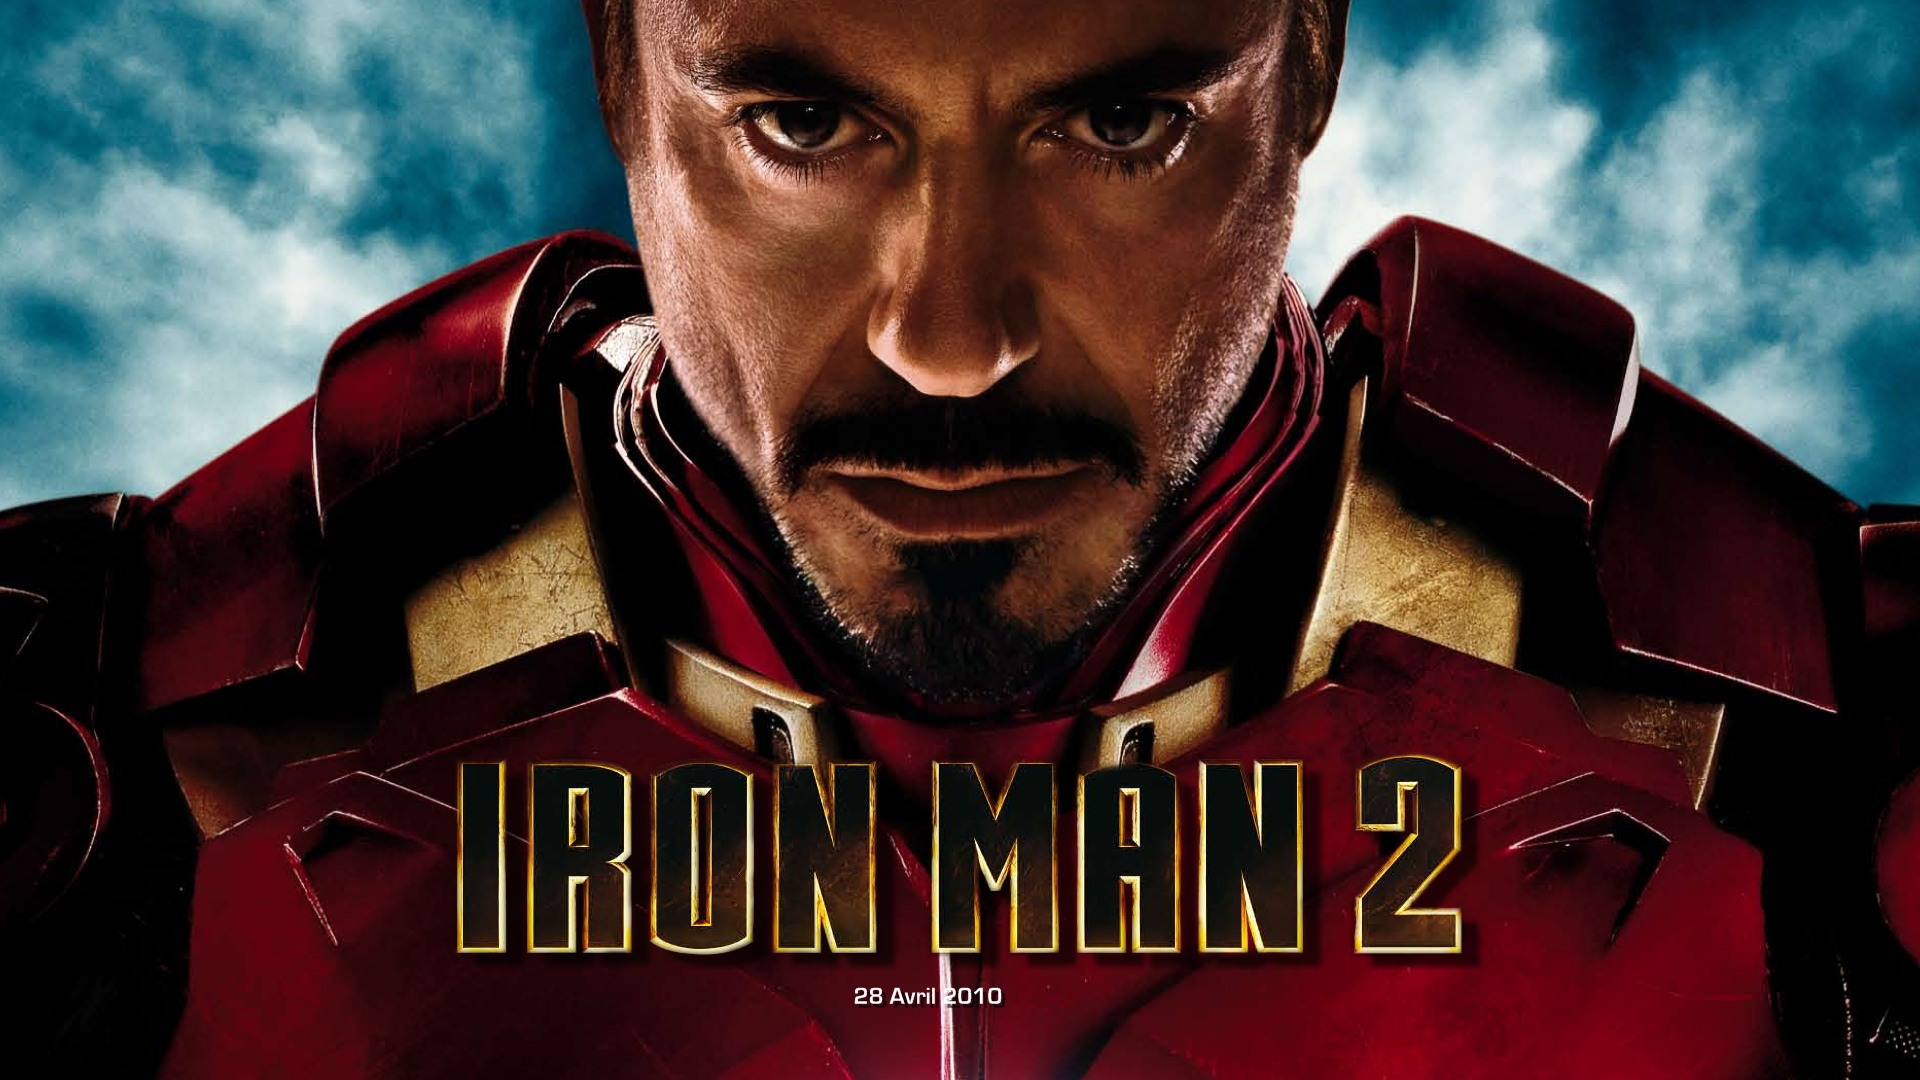 Iron Man The Movie images Iron Man 2&3 HD wallpaper and ...